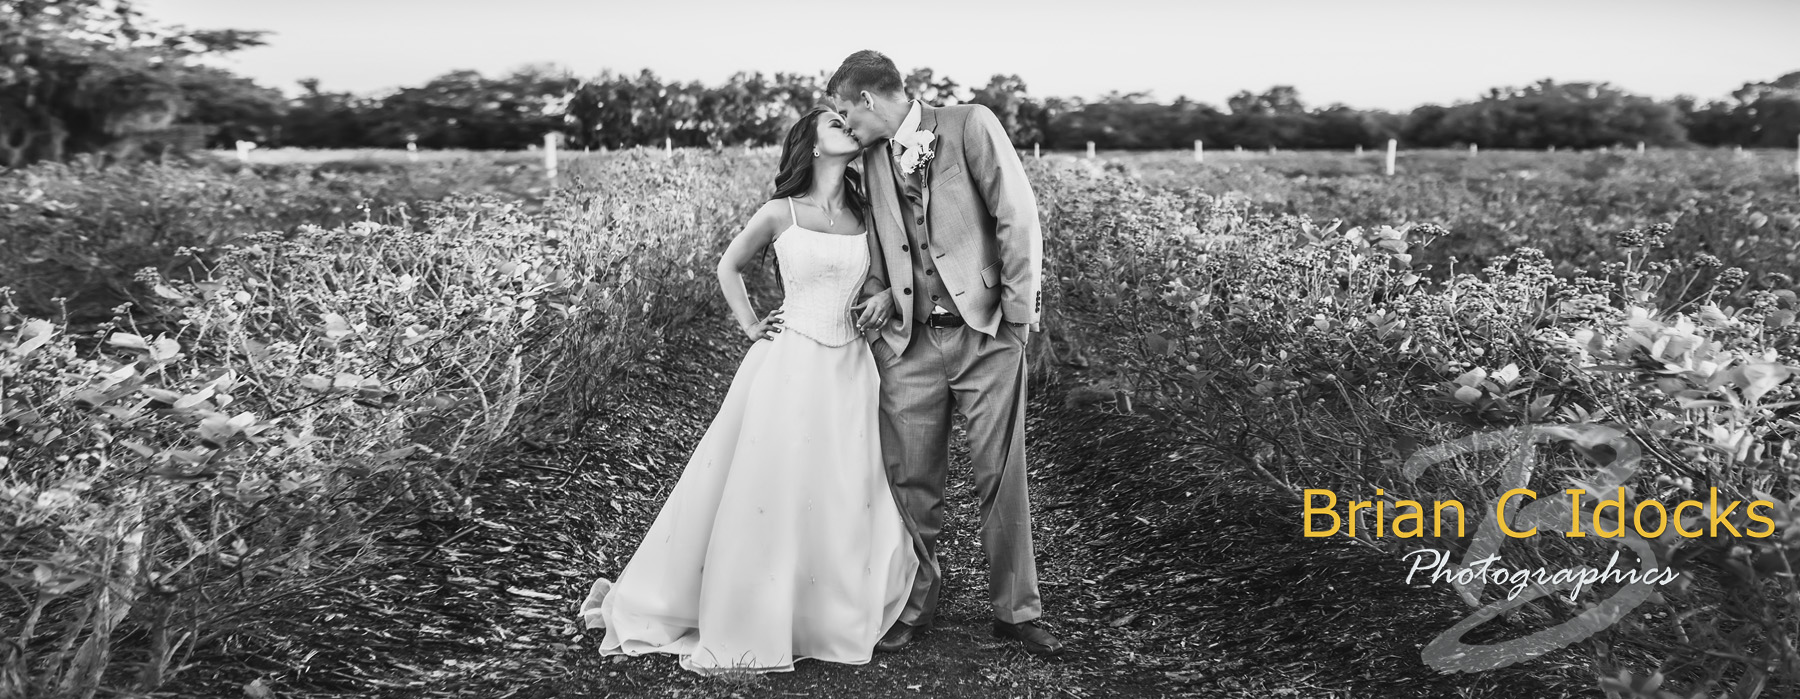 wedding photography prices pricing